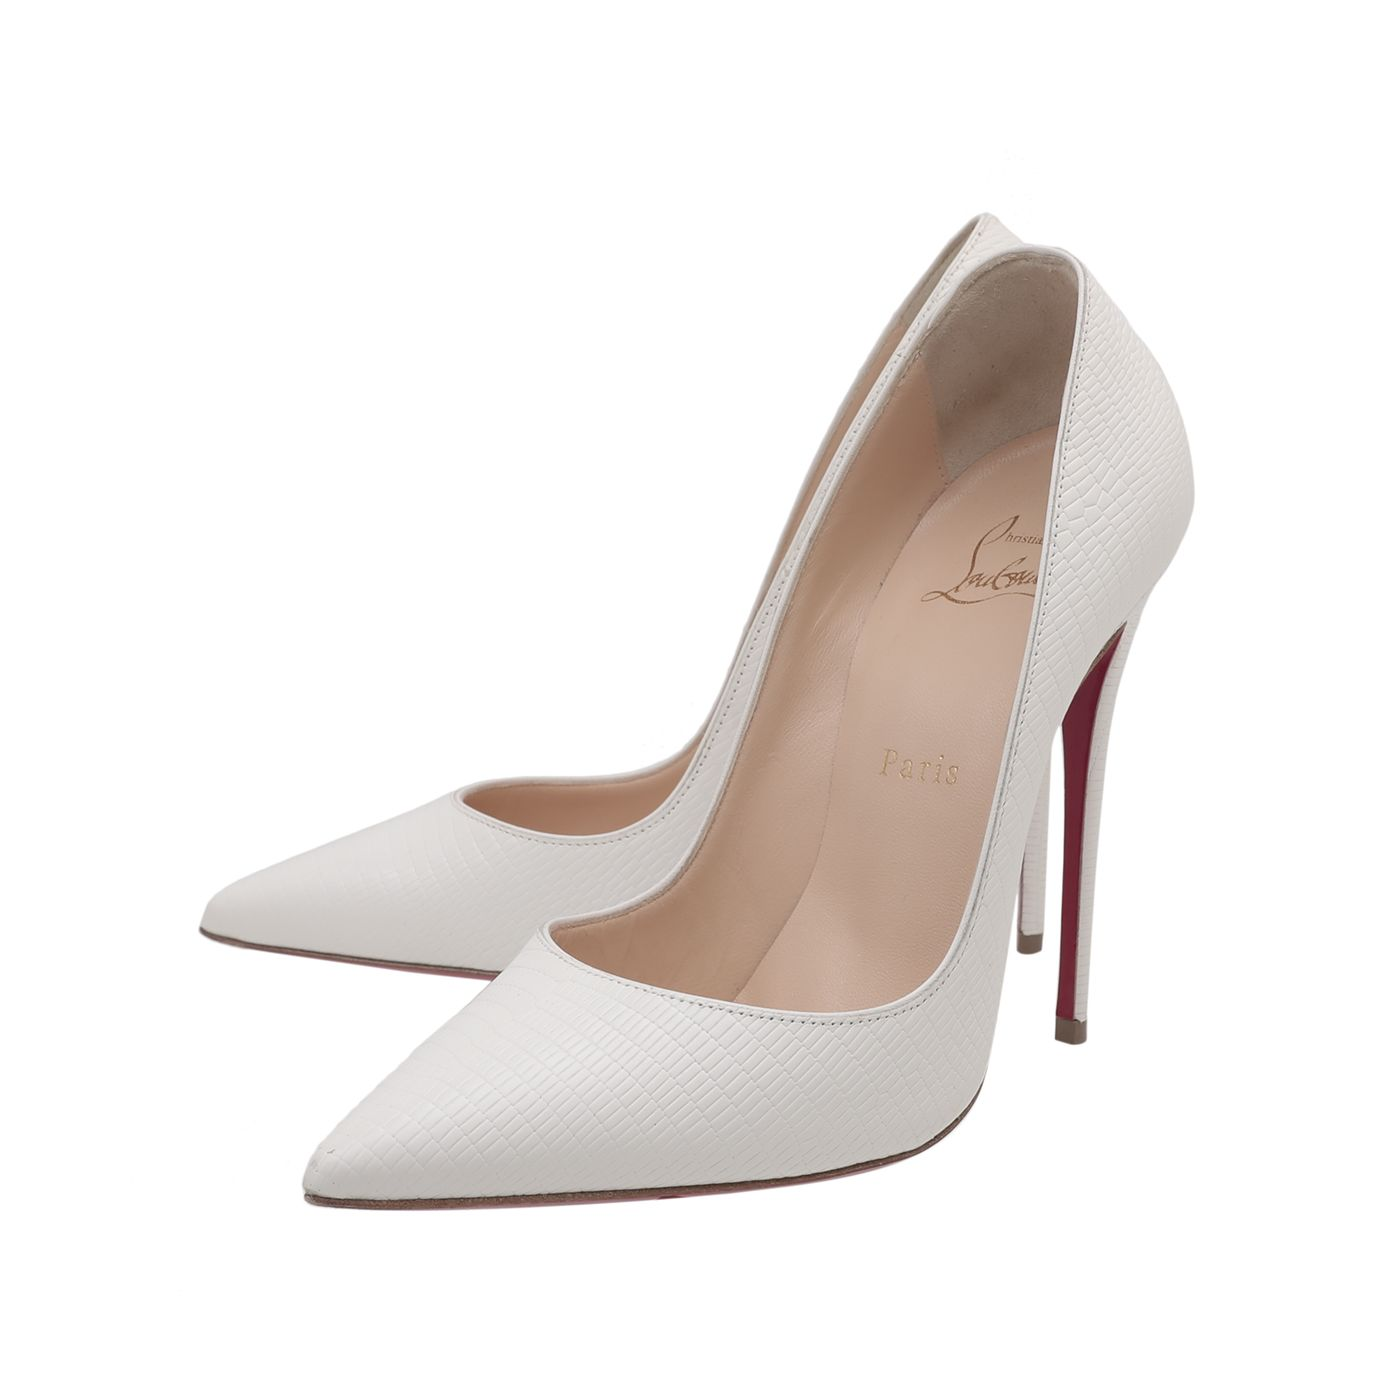 Christian Louboutin White Lizard Embossed So Kate 120mm Pumps 38.5